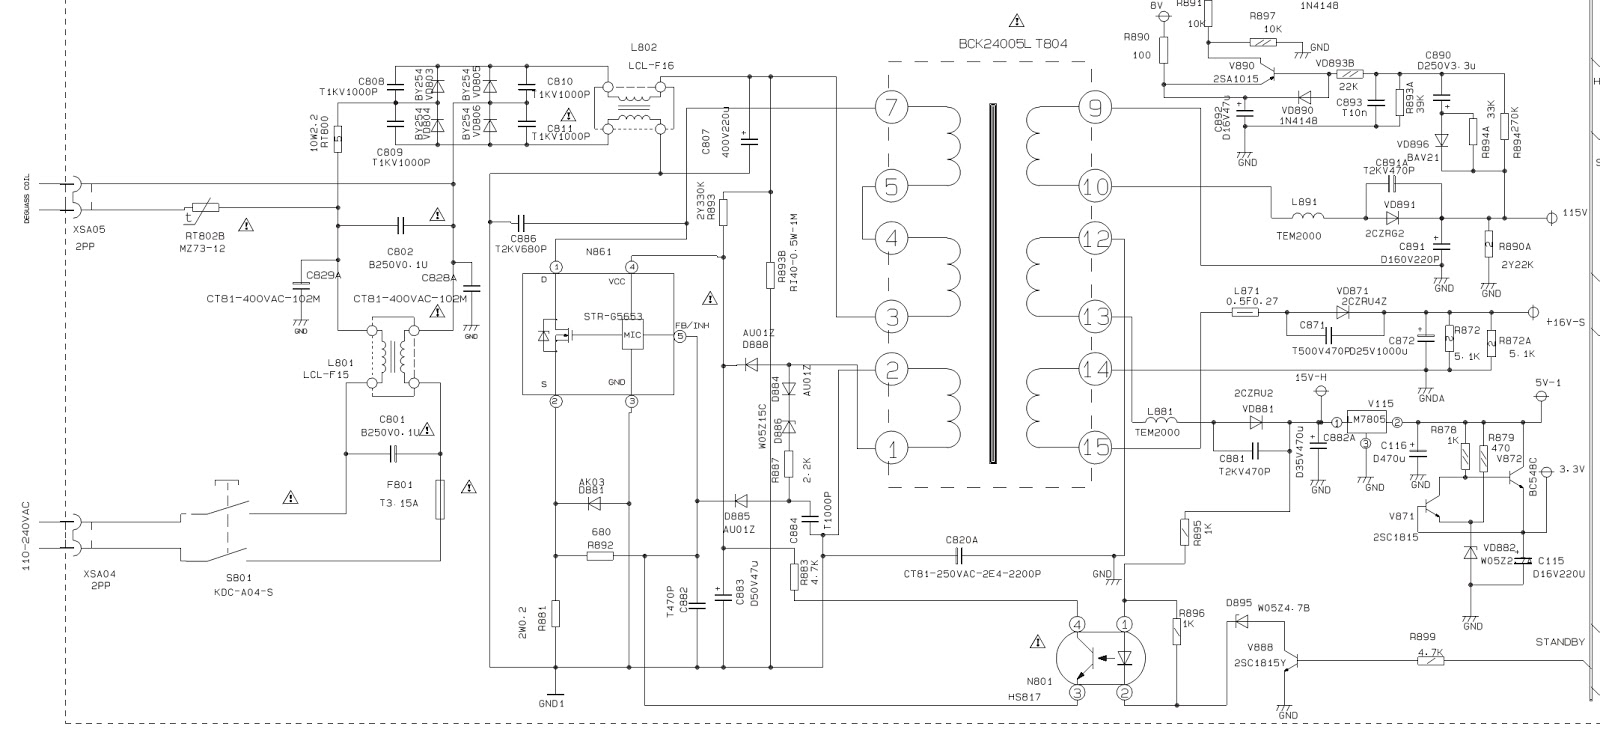 Wiring Diagrams Archives Page 65 Of 116 Binatanicom